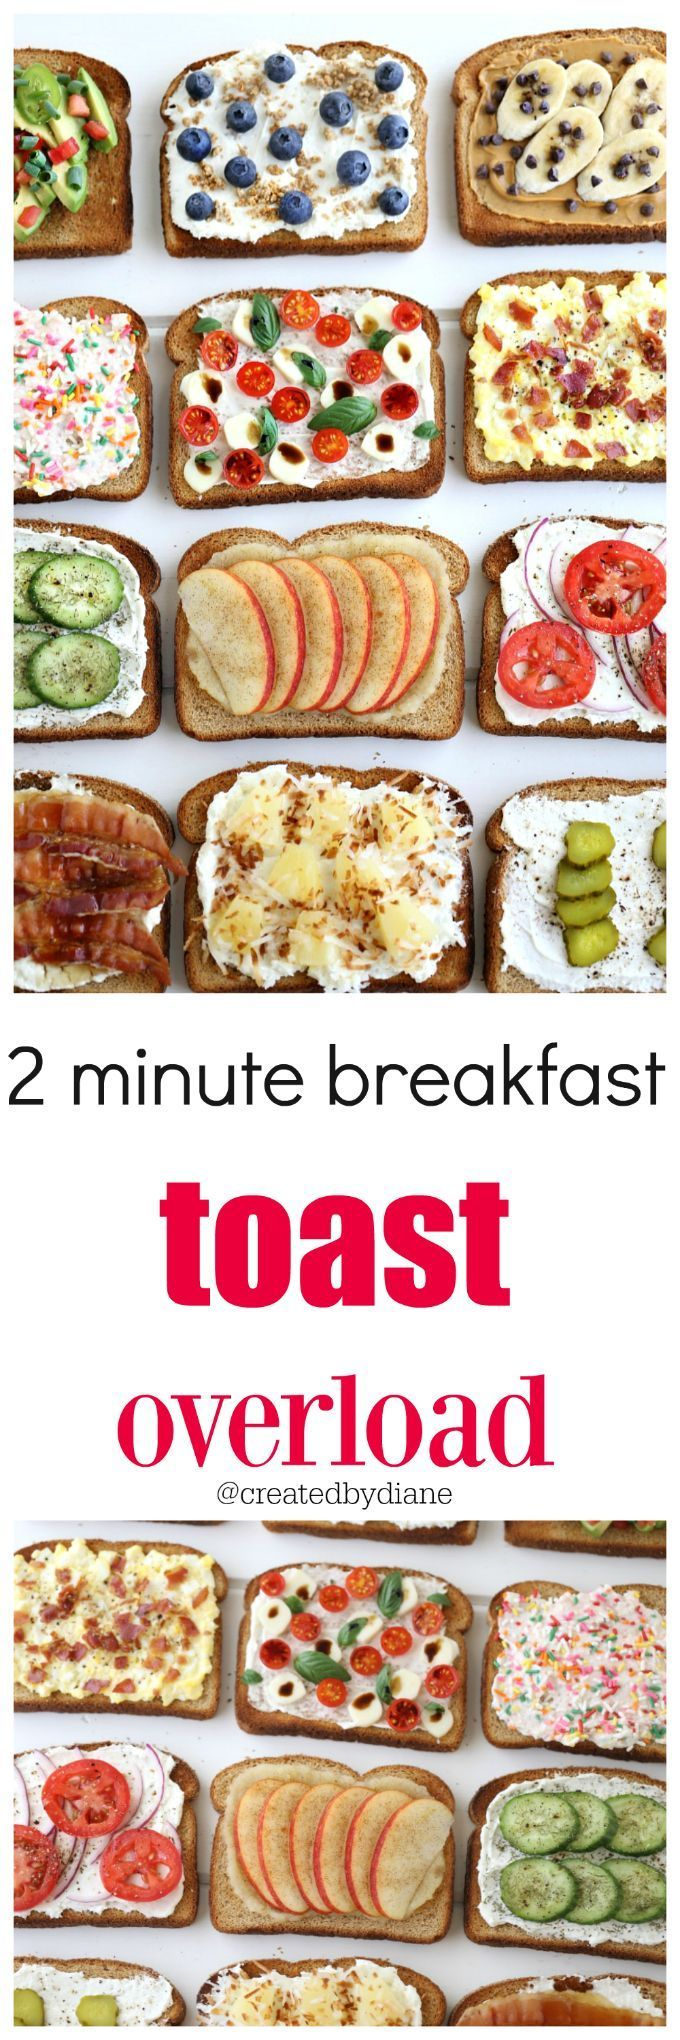 2 minute breakfast toast overload @Created by Diane